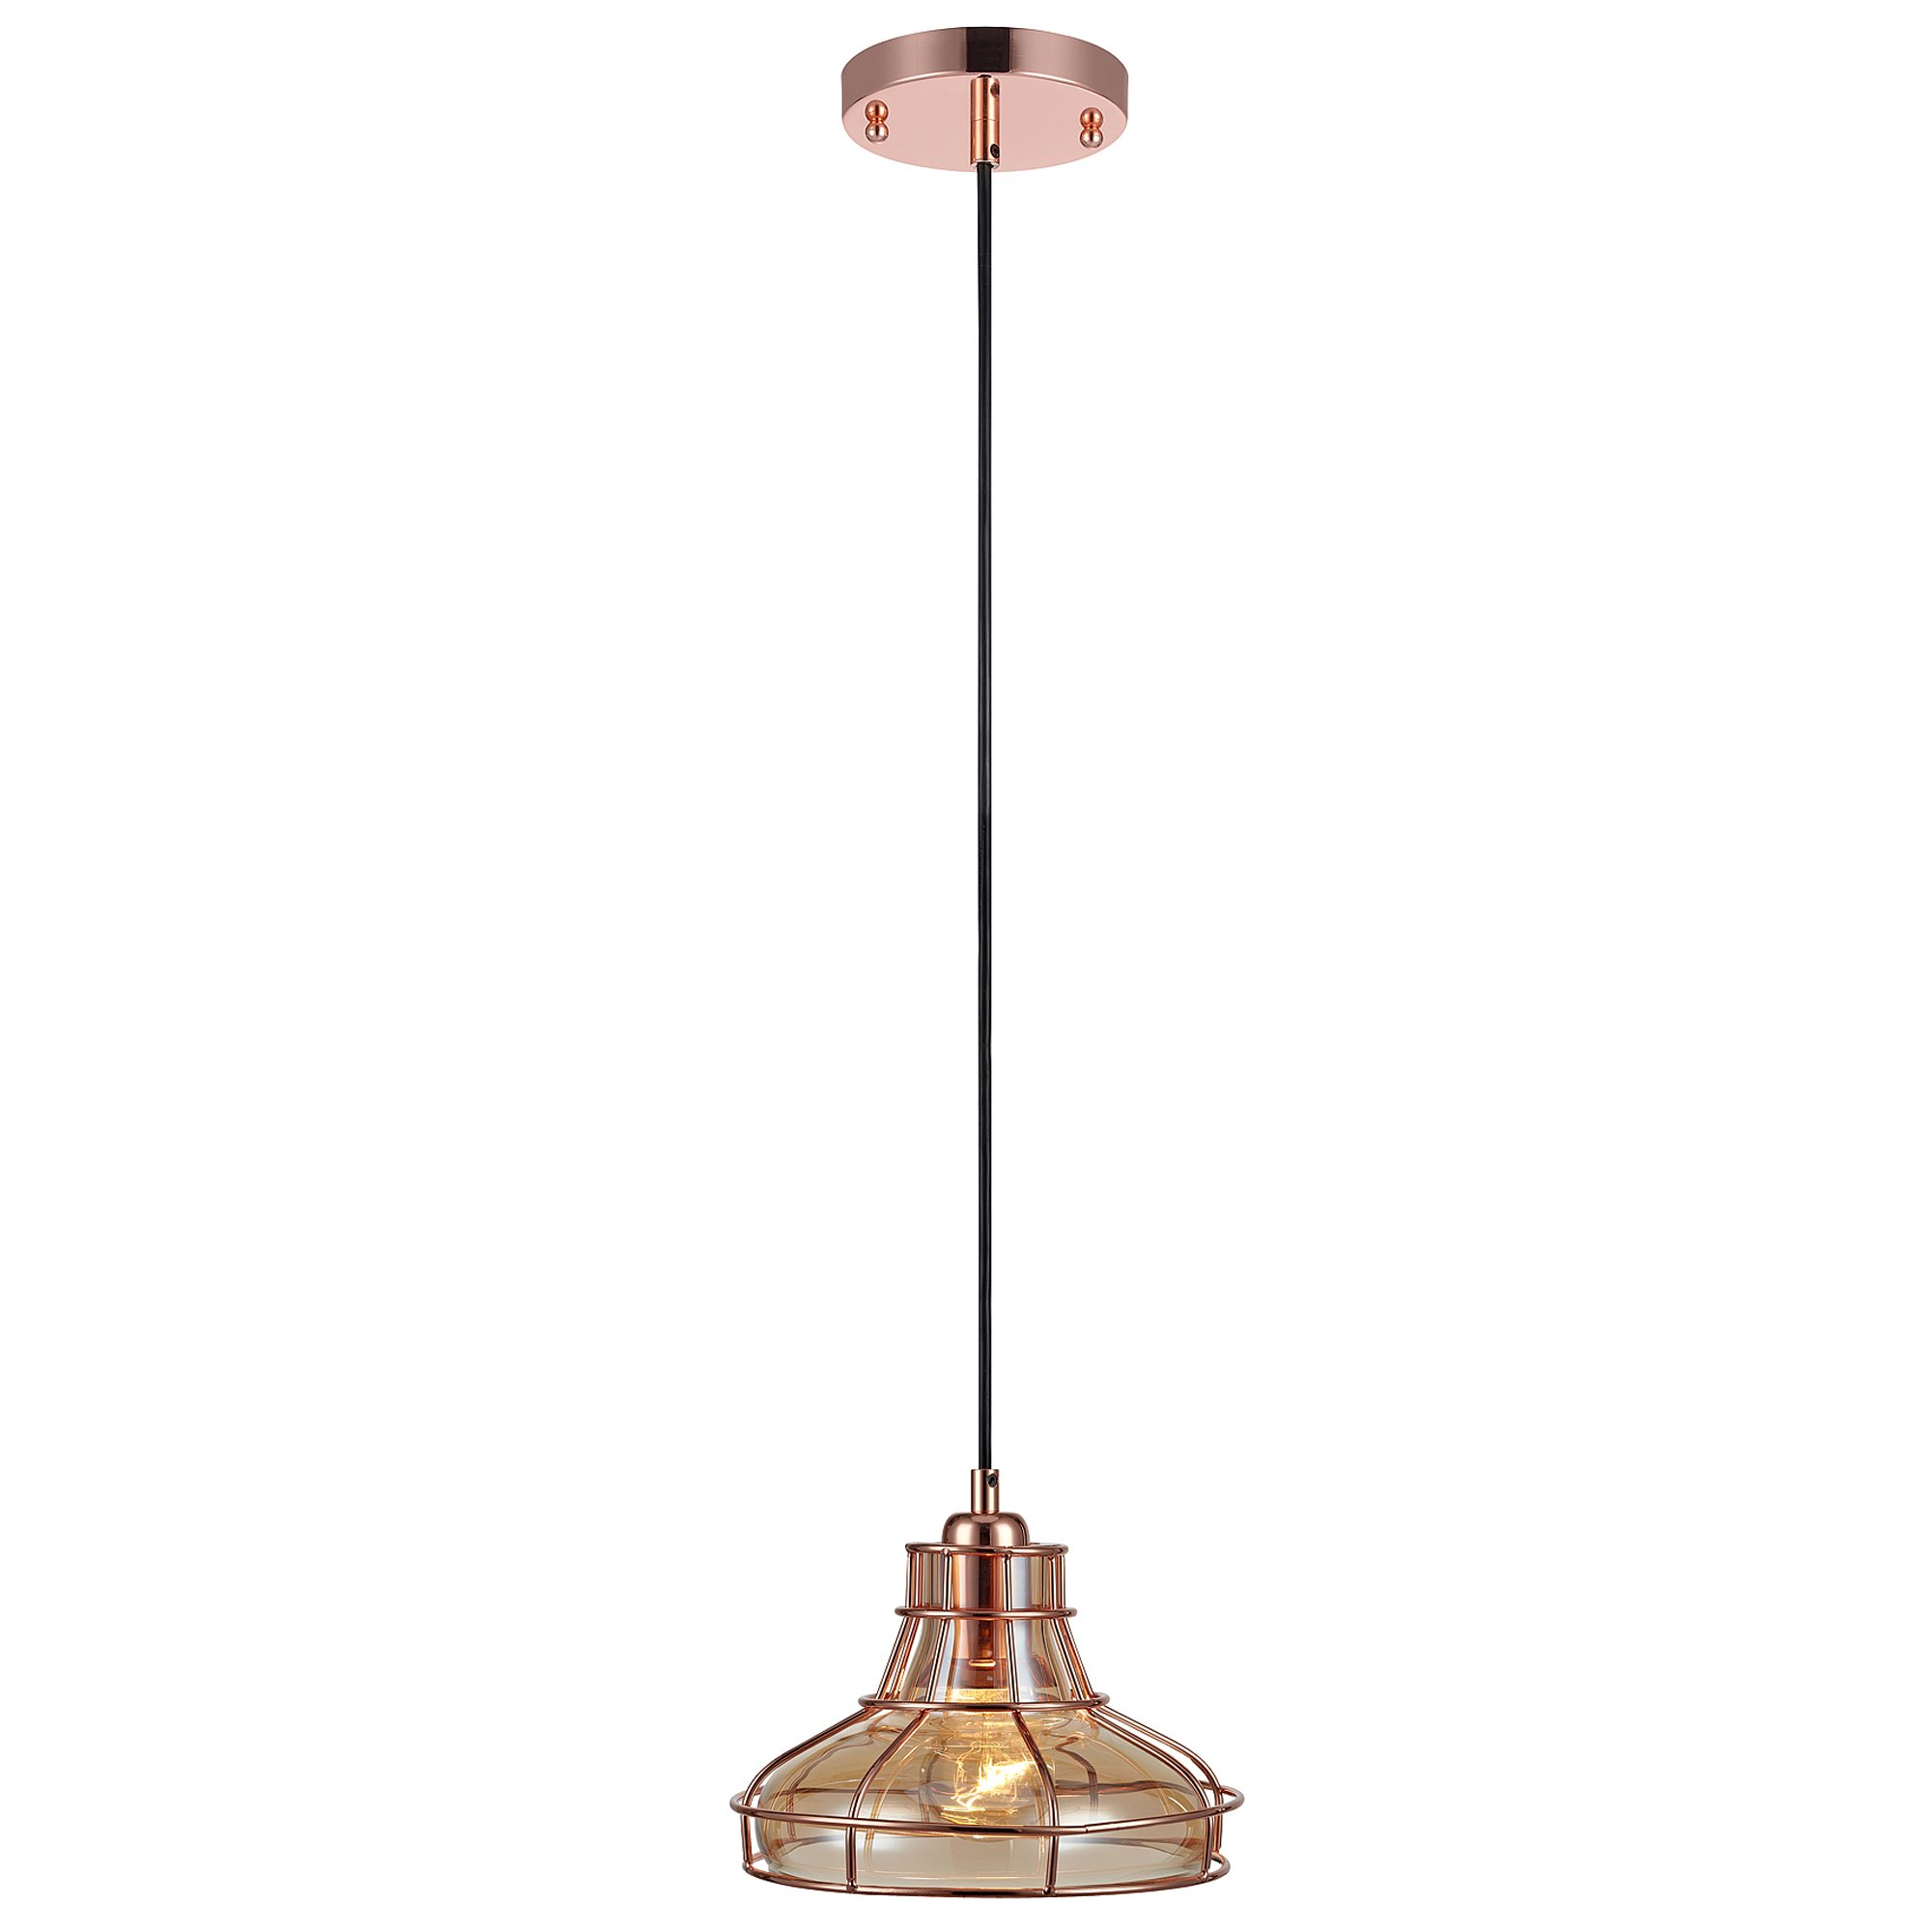 Versanora VN-L00032 Mini Illusione 1-Light Metal Pendant Lamp with Cage-Rose Gold Finish | Vintage Style | Industrial Design for Modern Kitchens. Living Rooms and Bedroom